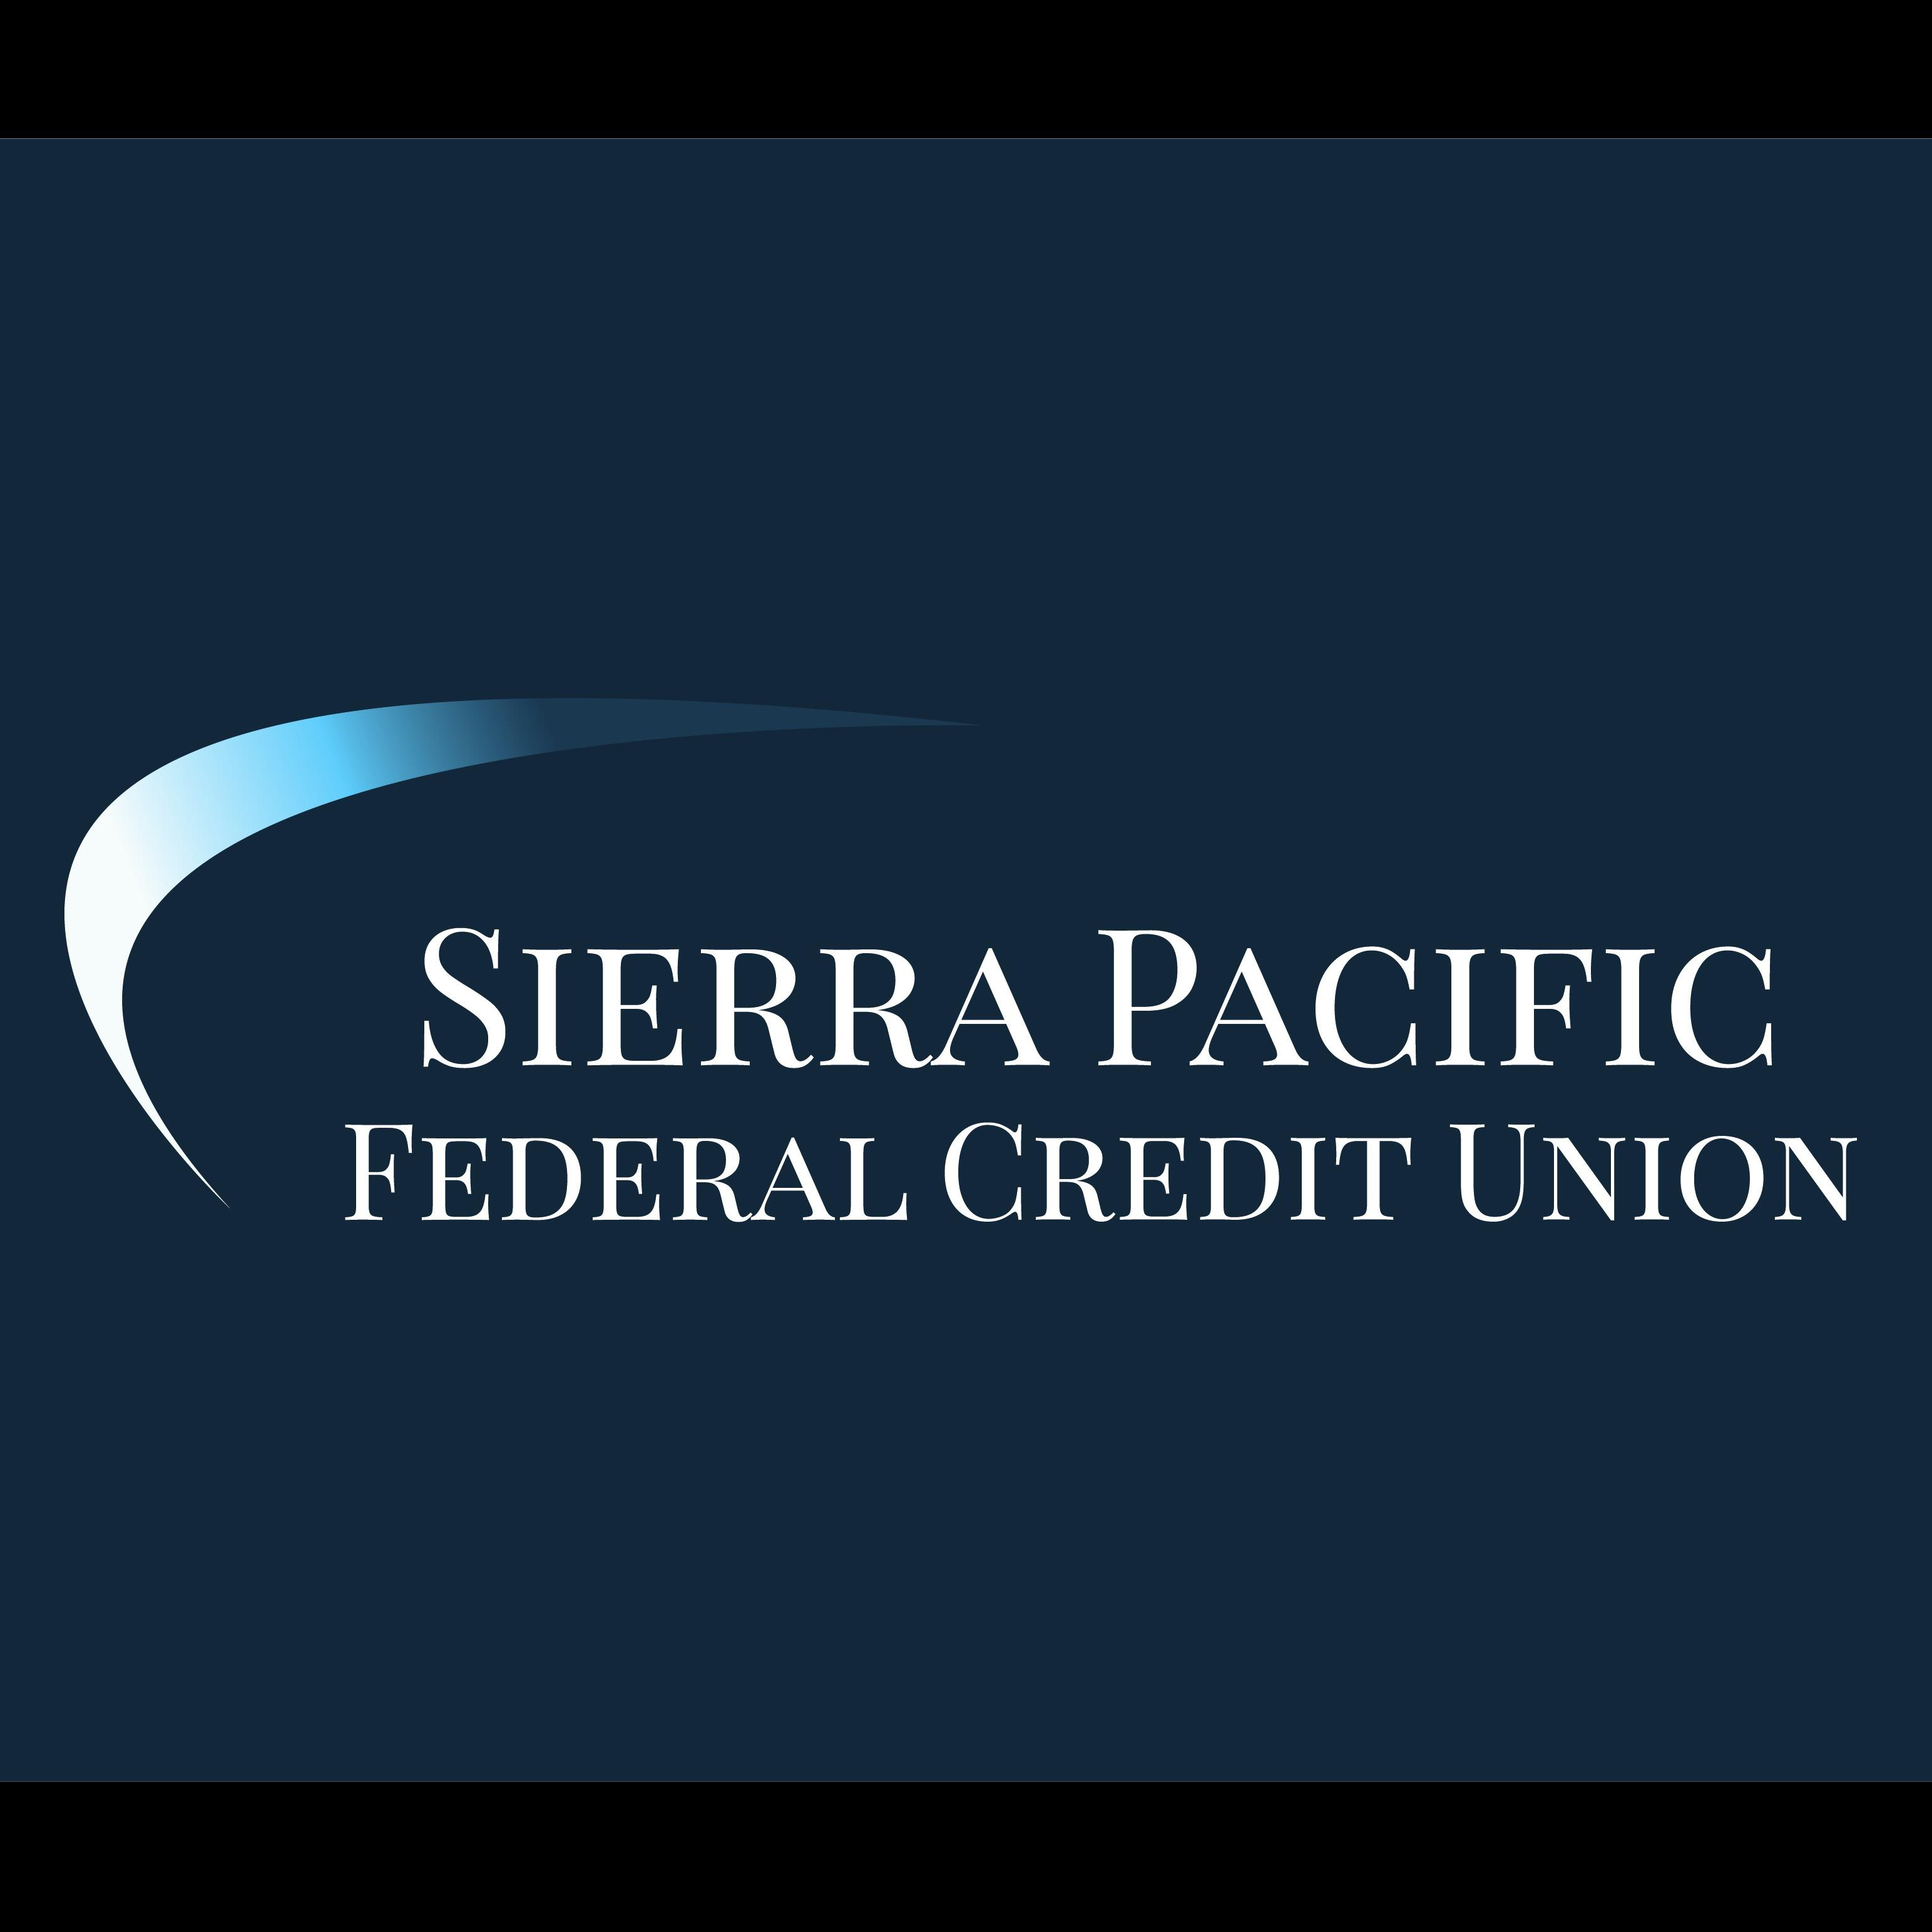 Sierra Pacific Federal Credit Union